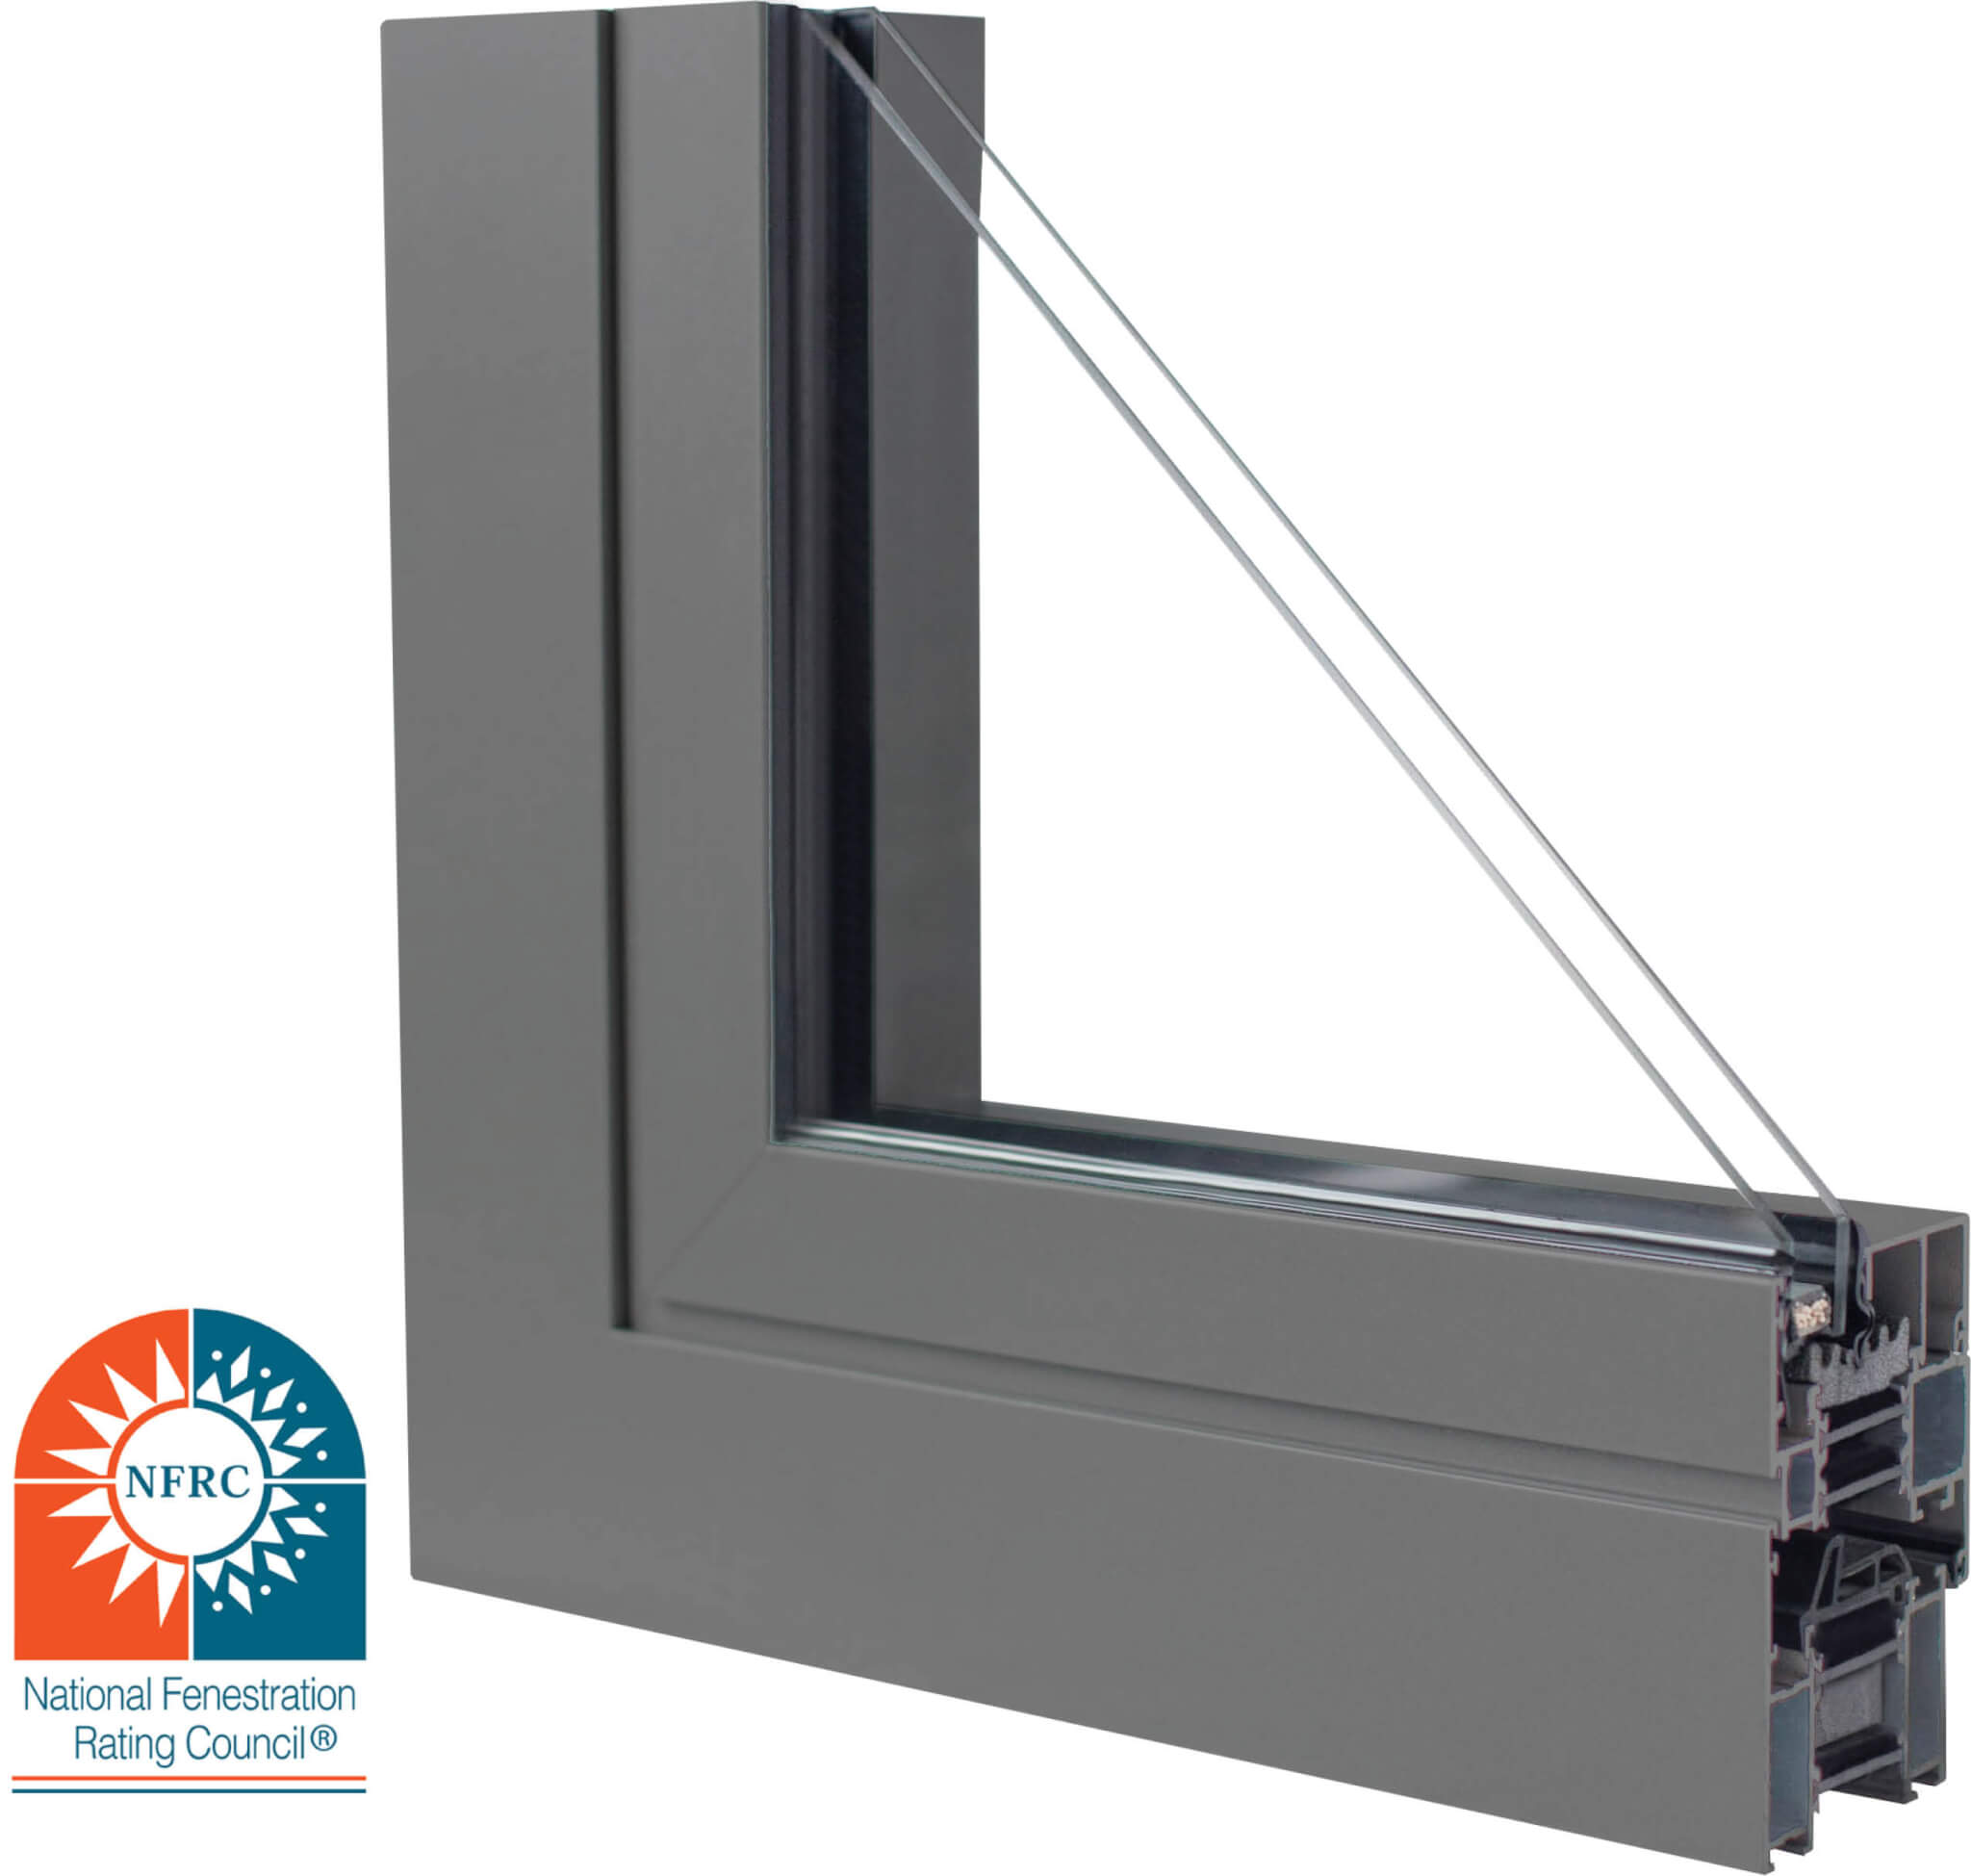 aluminum window, aluminum triple pane window, european windows, european aluminum windows, black windows